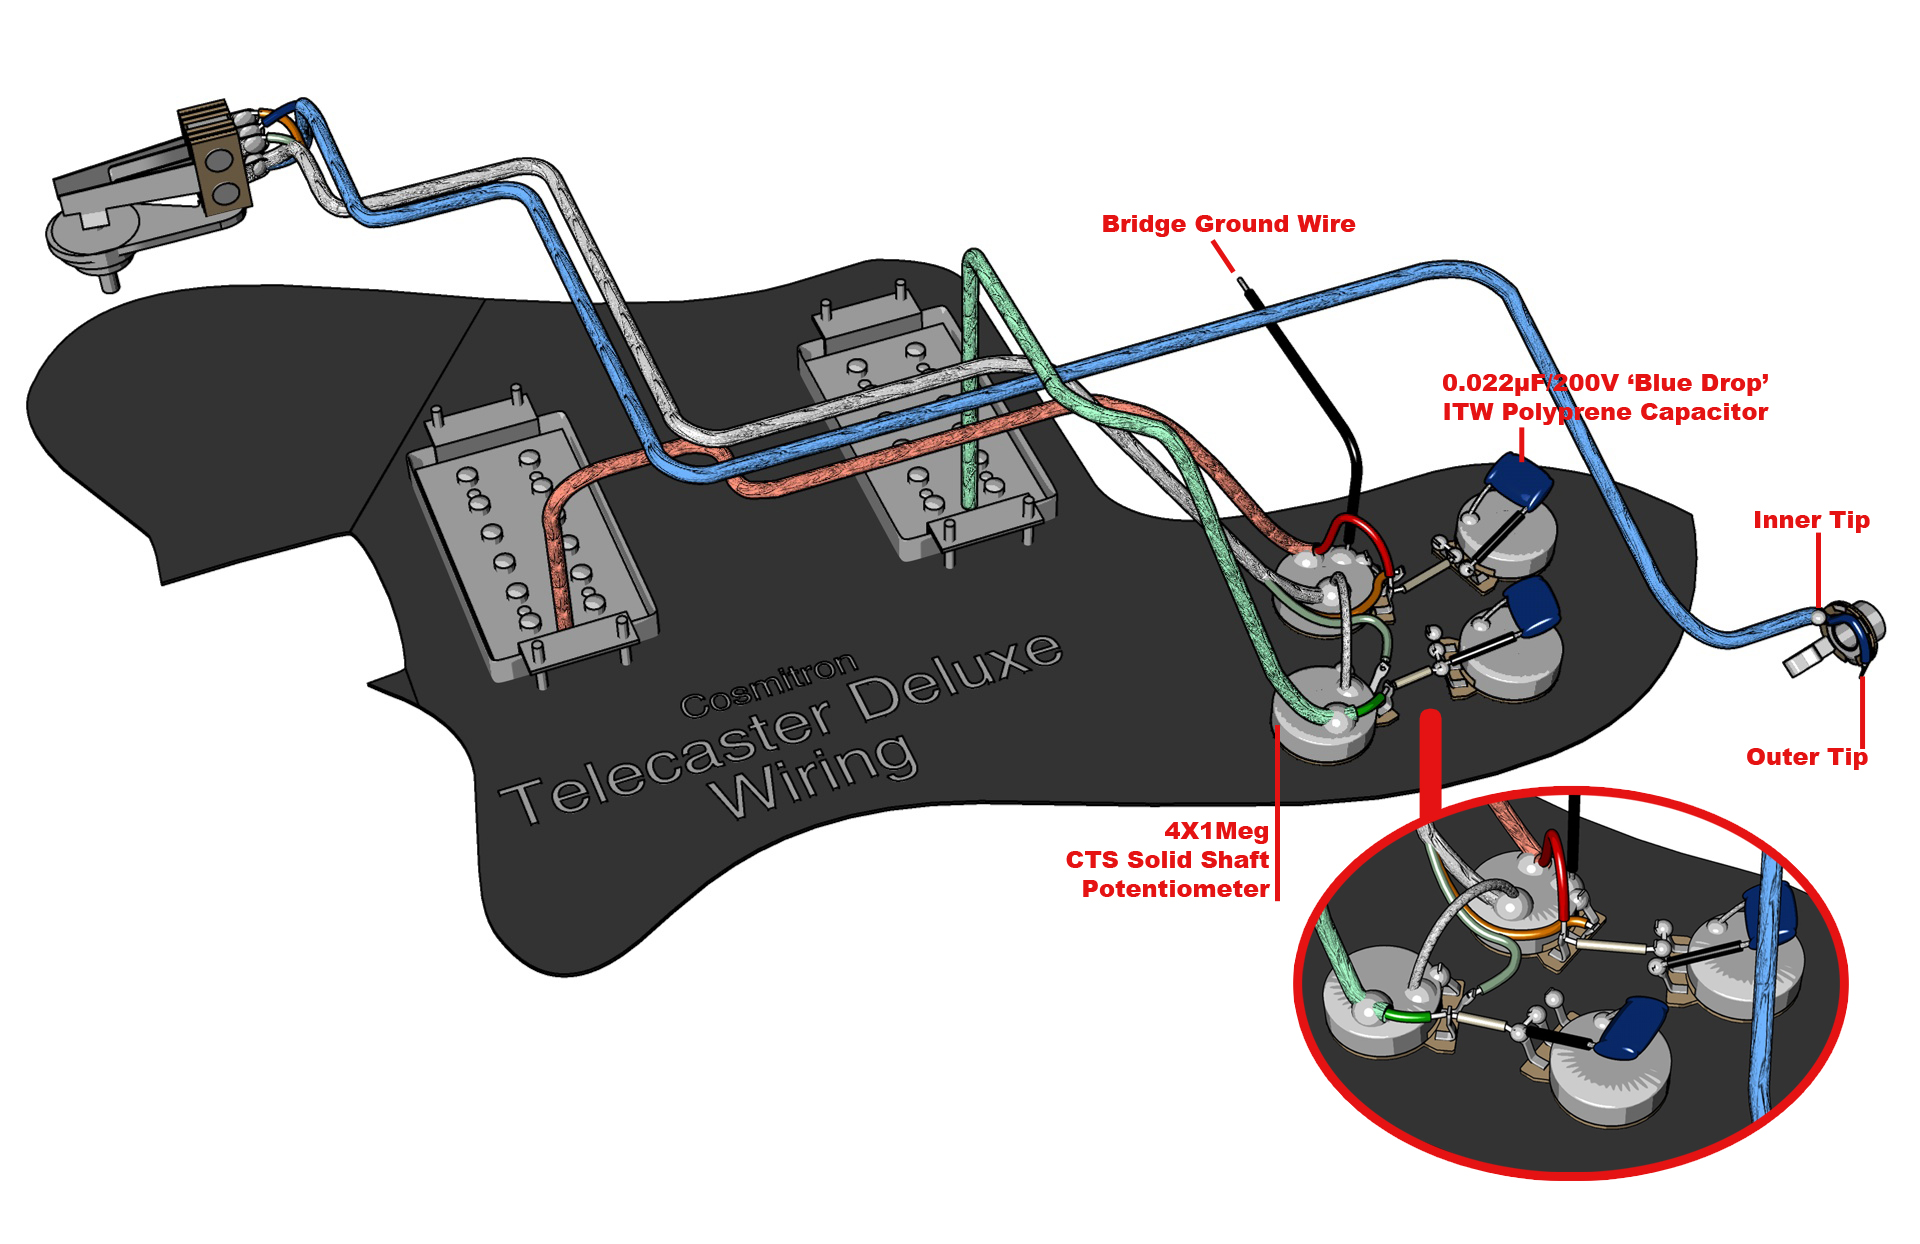 Fender Telecaster Wiring Diagram Active Kit on fender marauder wiring diagram, fender esquire wiring-diagram, fender amplifier wiring diagram, gibson thunderbird wiring diagram, fender amp wiring diagram, fender musicmaster wiring diagram, fender hm strat wiring diagram, telecaster 3-way switch wiring diagram, dean ml wiring diagram, fender toronado wiring diagram, starcaster by fender wiring diagram, fender stratocaster wiring-diagram, telecaster texas special wiring diagram, fender deluxe wiring diagram, fender telecaster three-way diagram, fender bronco wiring diagram, seymour duncan telecaster wiring diagram, gibson lp wiring diagram, fender blues junior wiring diagram, emg telecaster wiring diagram,